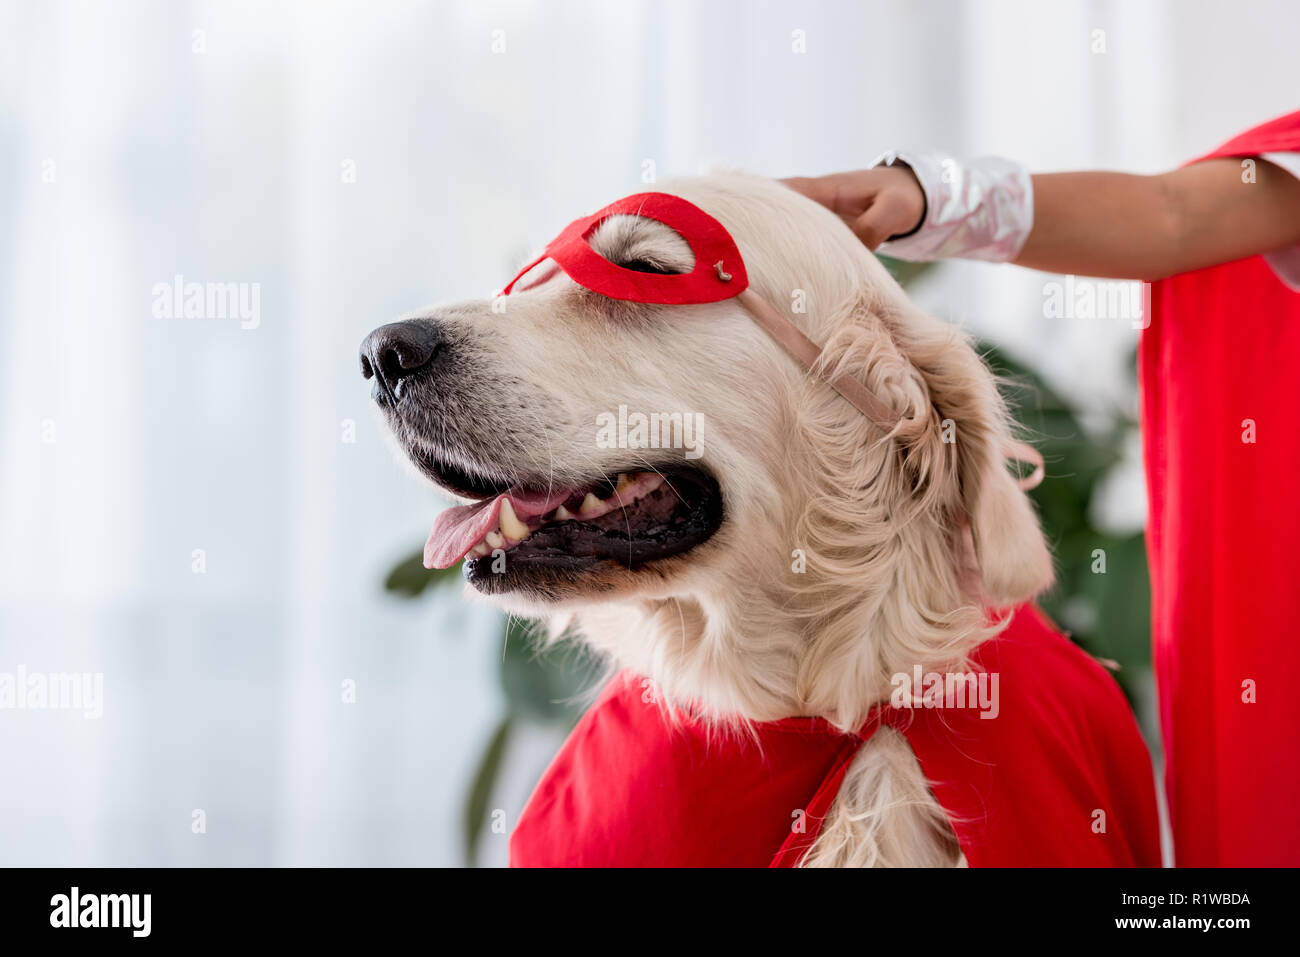 Partial view of hand petting golden retriever dog in red superhero mask Stock Photo